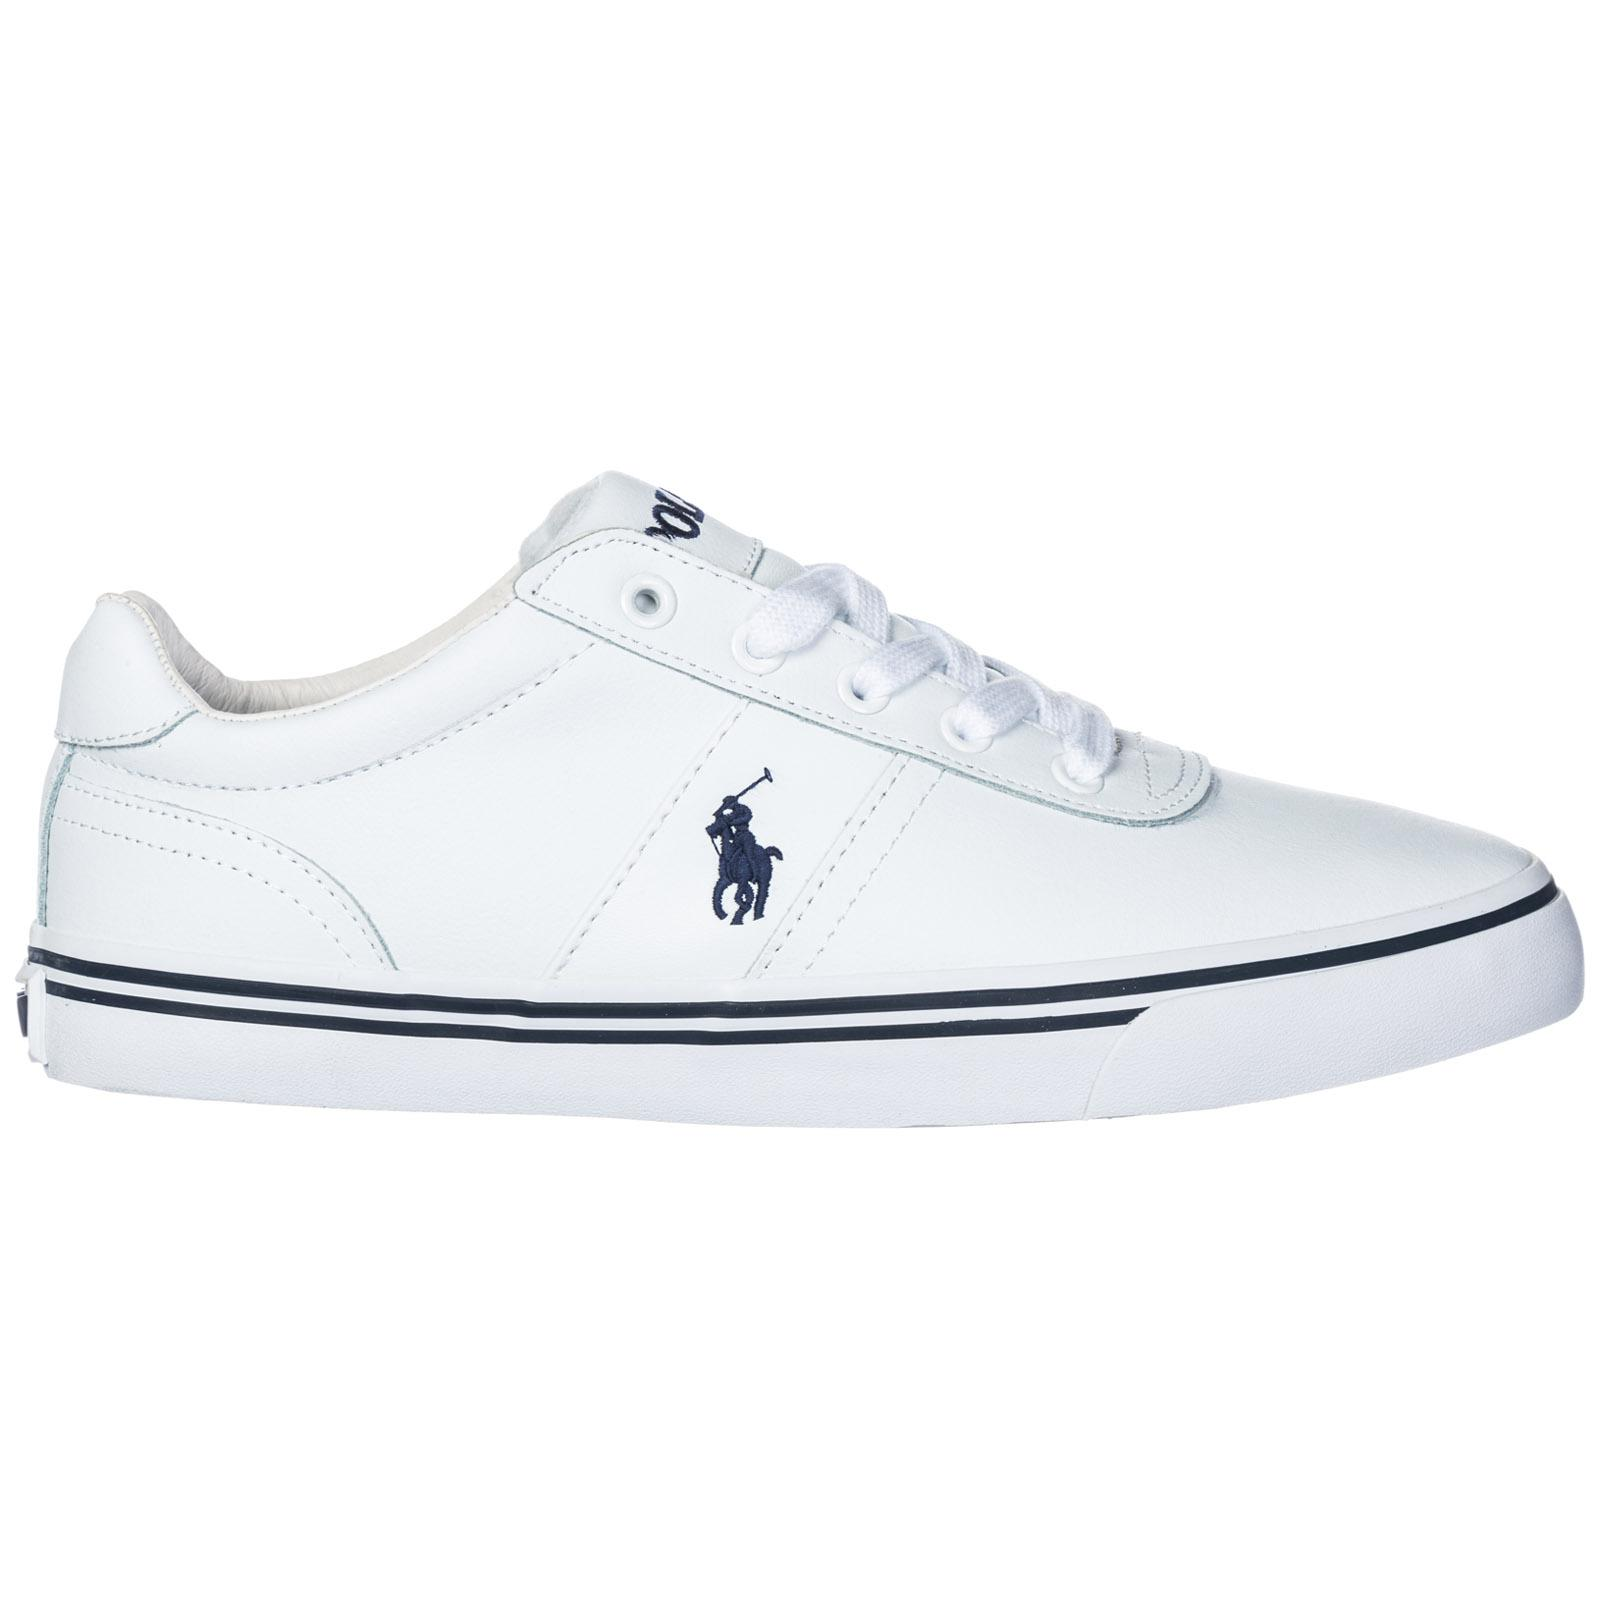 Lauren In Shoes Hanford Polo Ralph White Trainers Leather Sneakers bgf76y